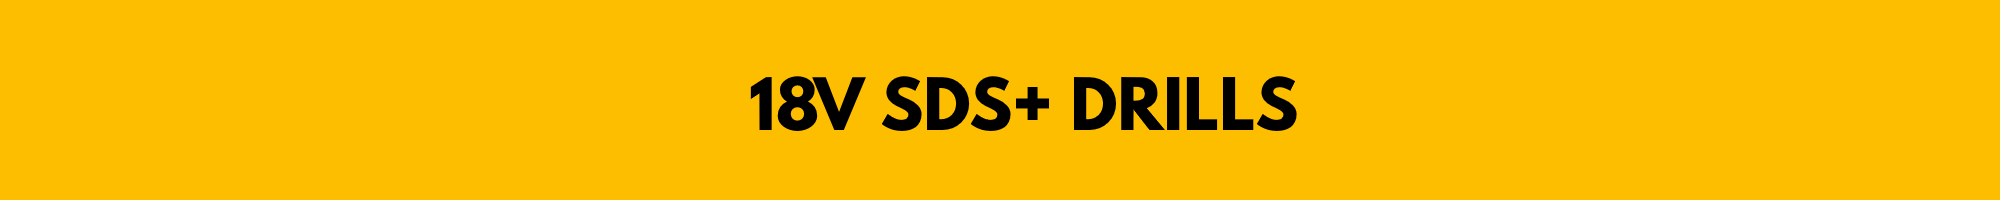 SDS DRILLS.png